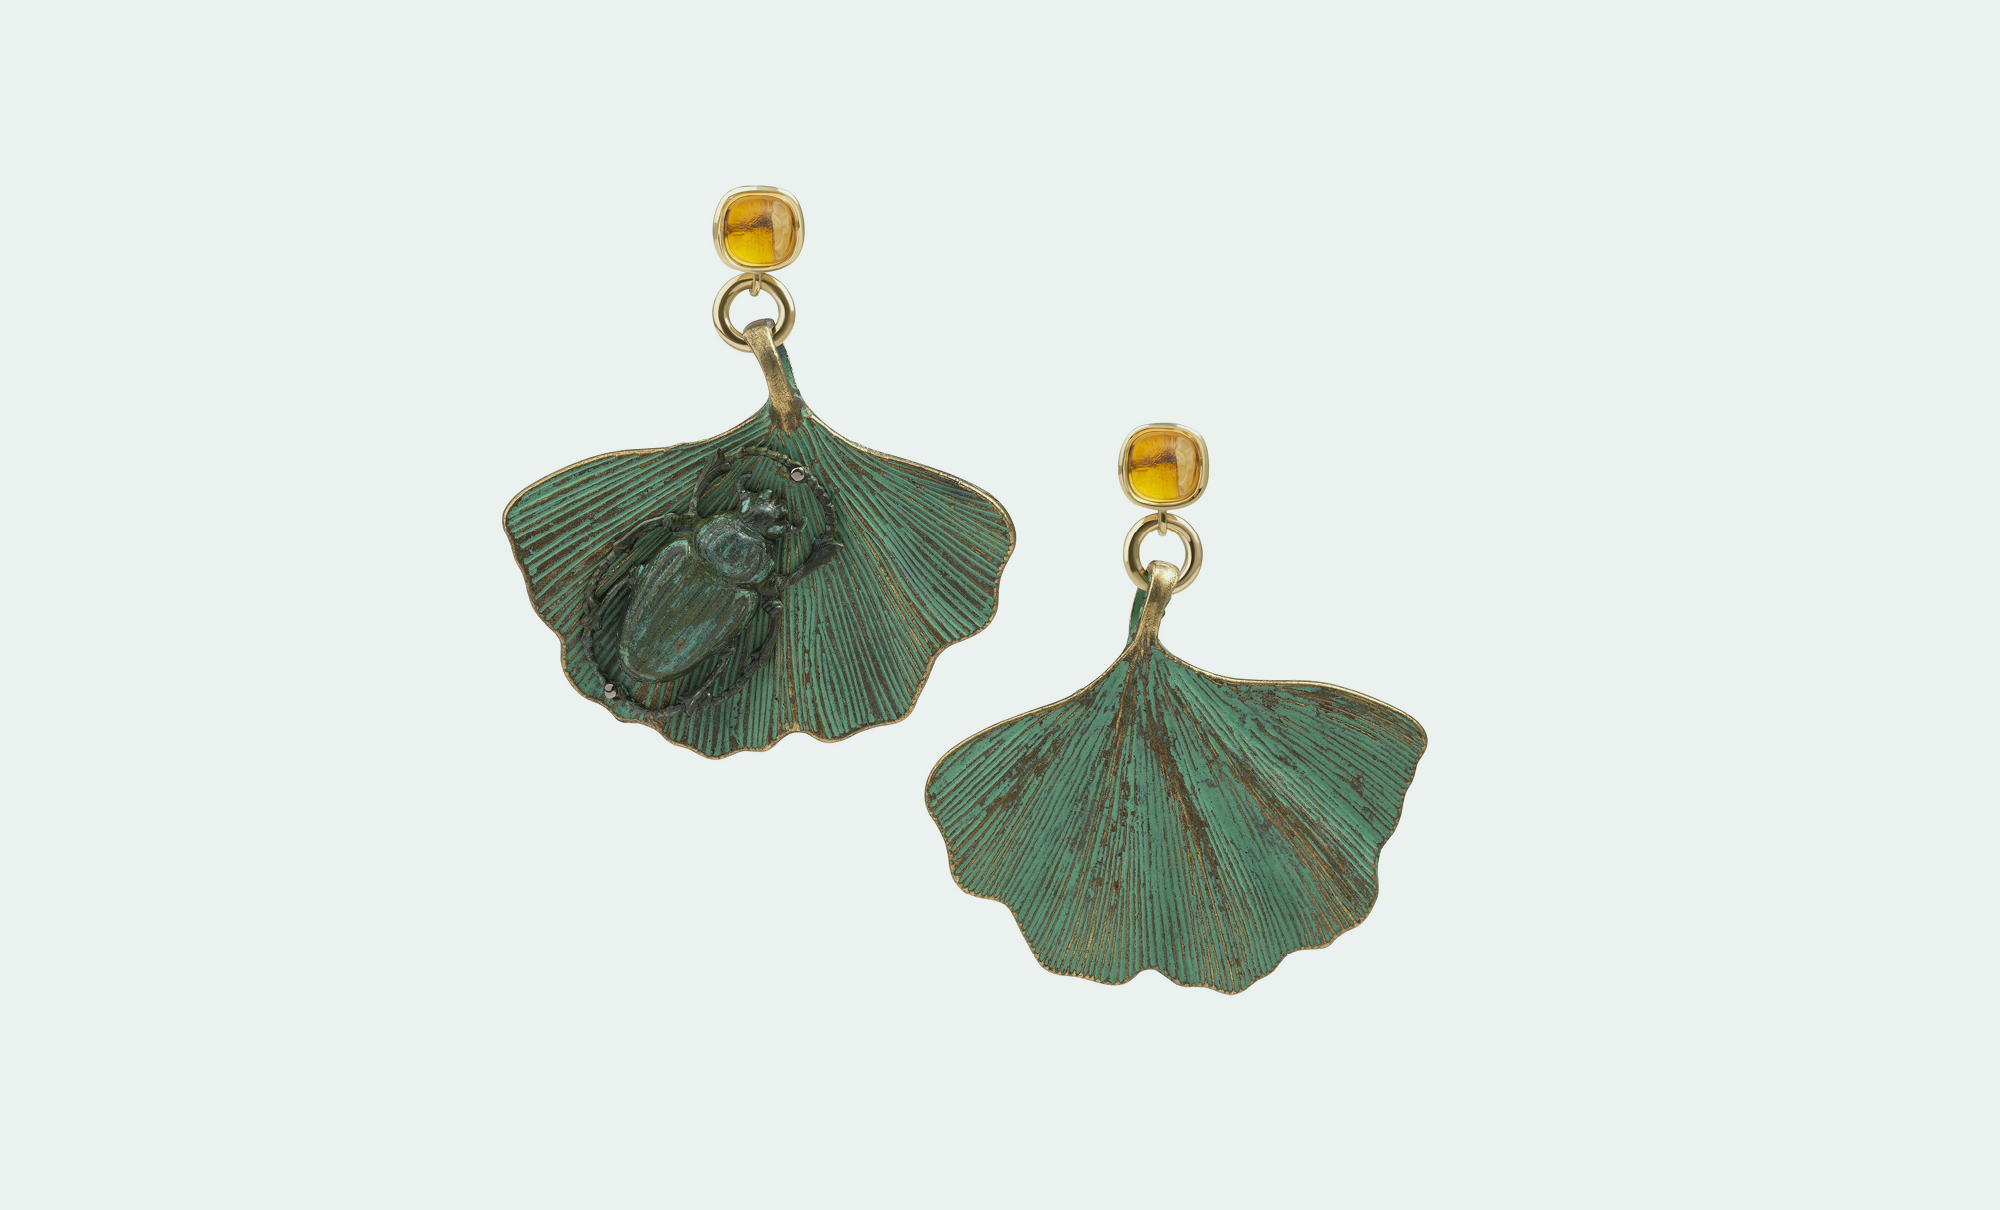 Tessa Packard's In the Greenhouse earrings